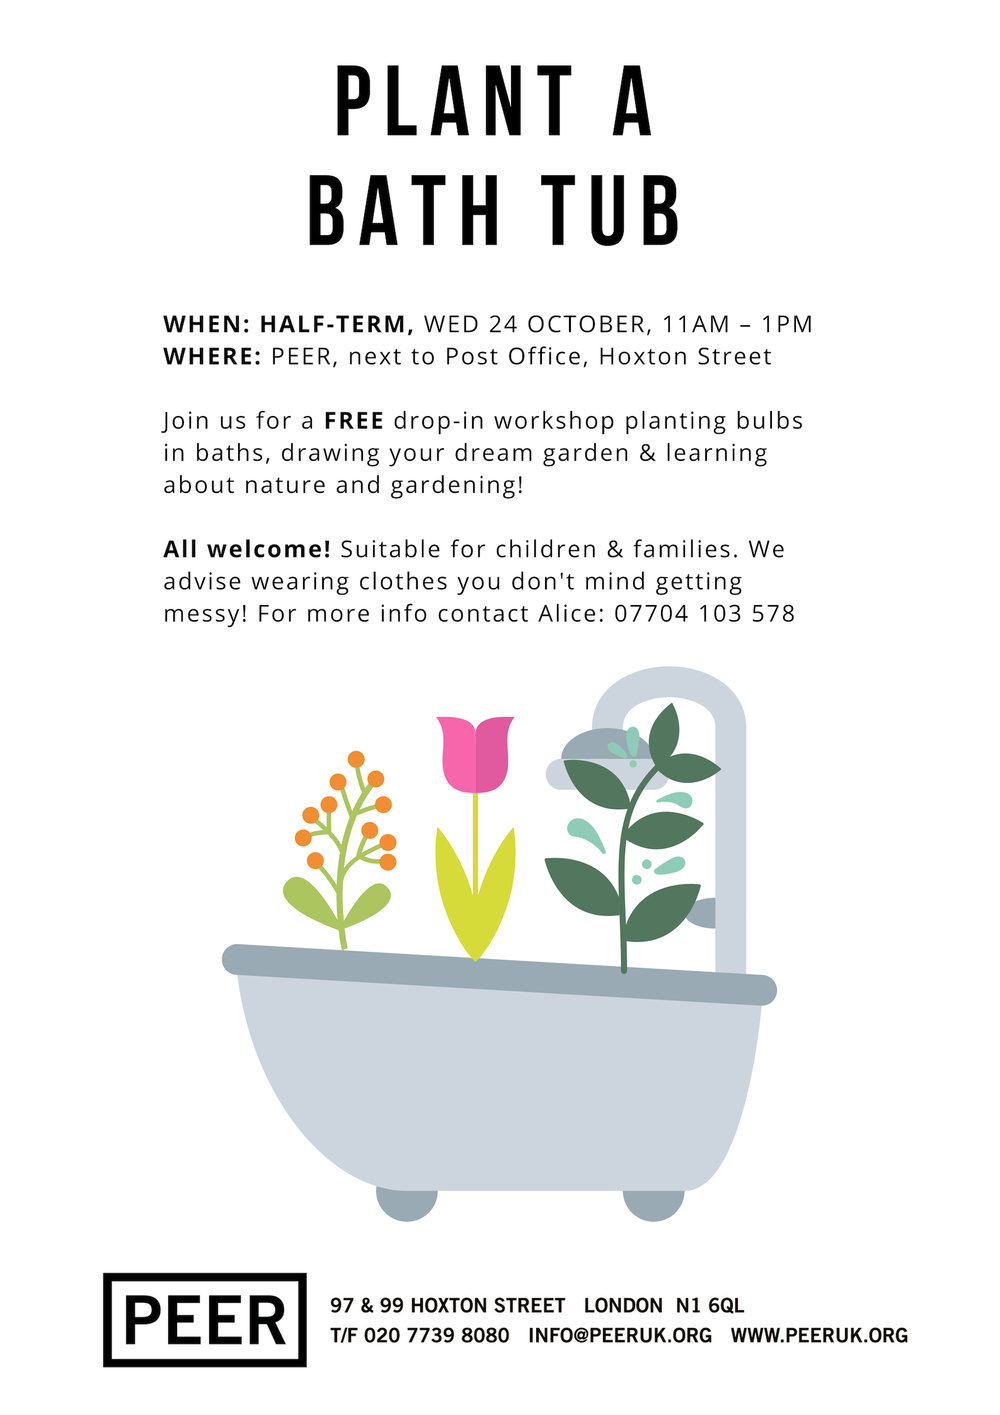 Poster for plant a bath tub workshop